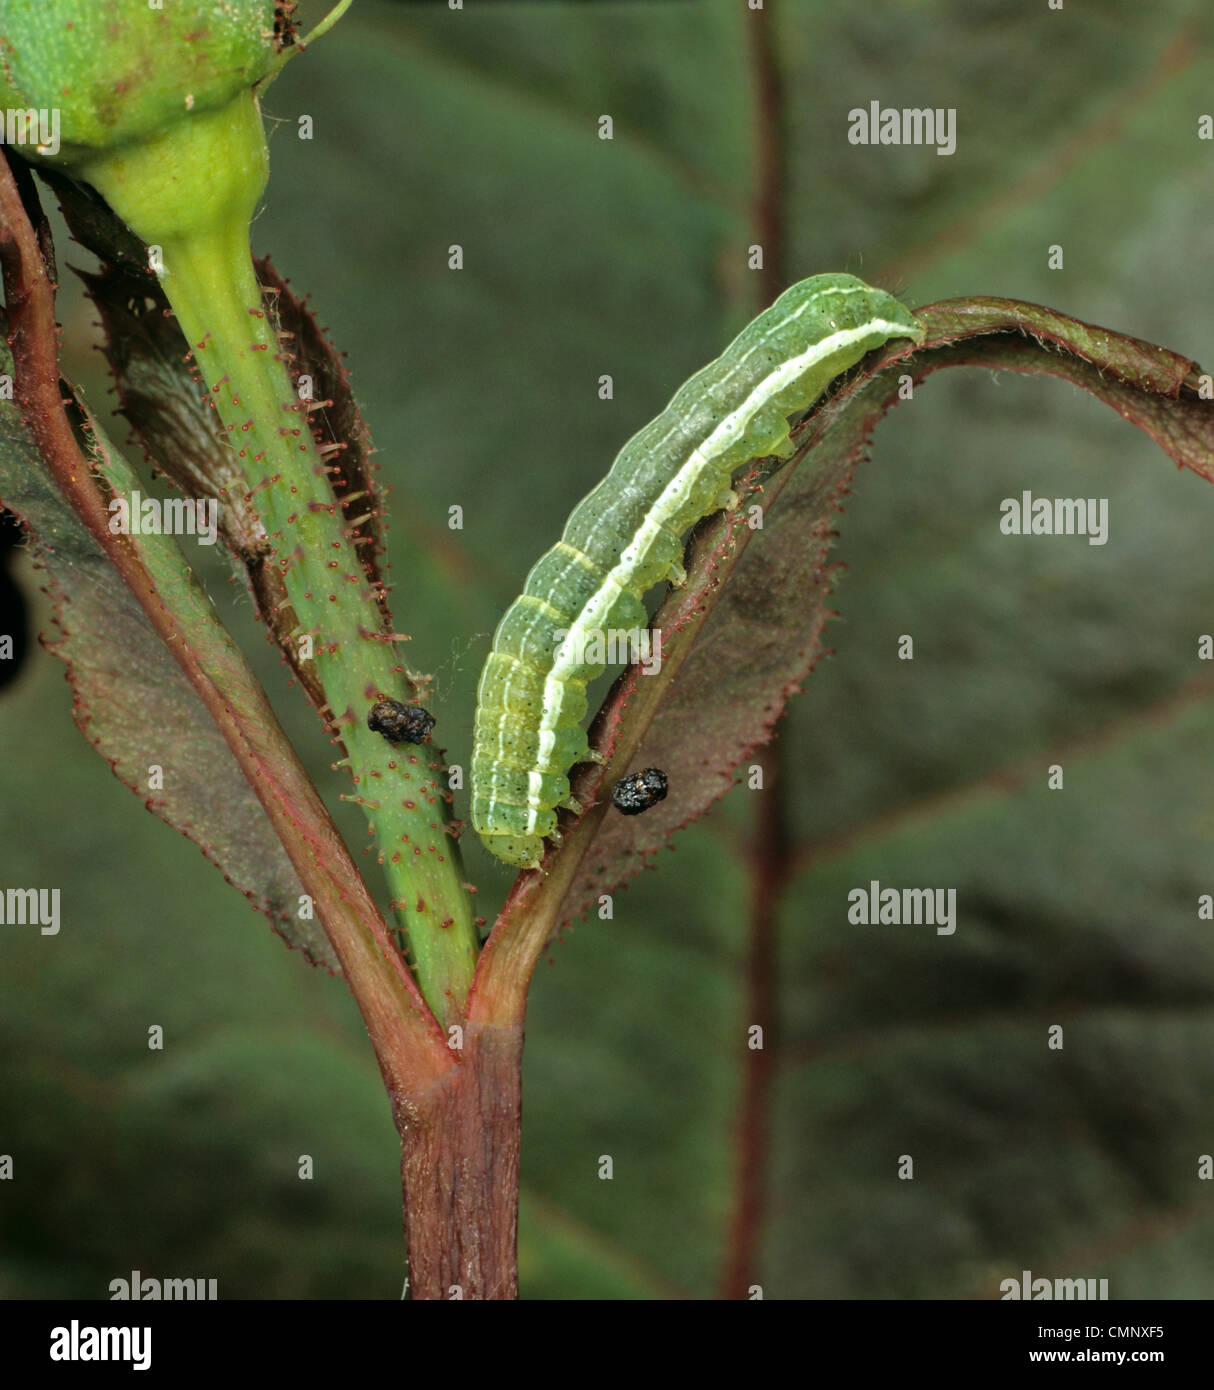 Clouded drab moth (Orthosia incerta) caterpillar on damaged rose flower bud - Stock Image